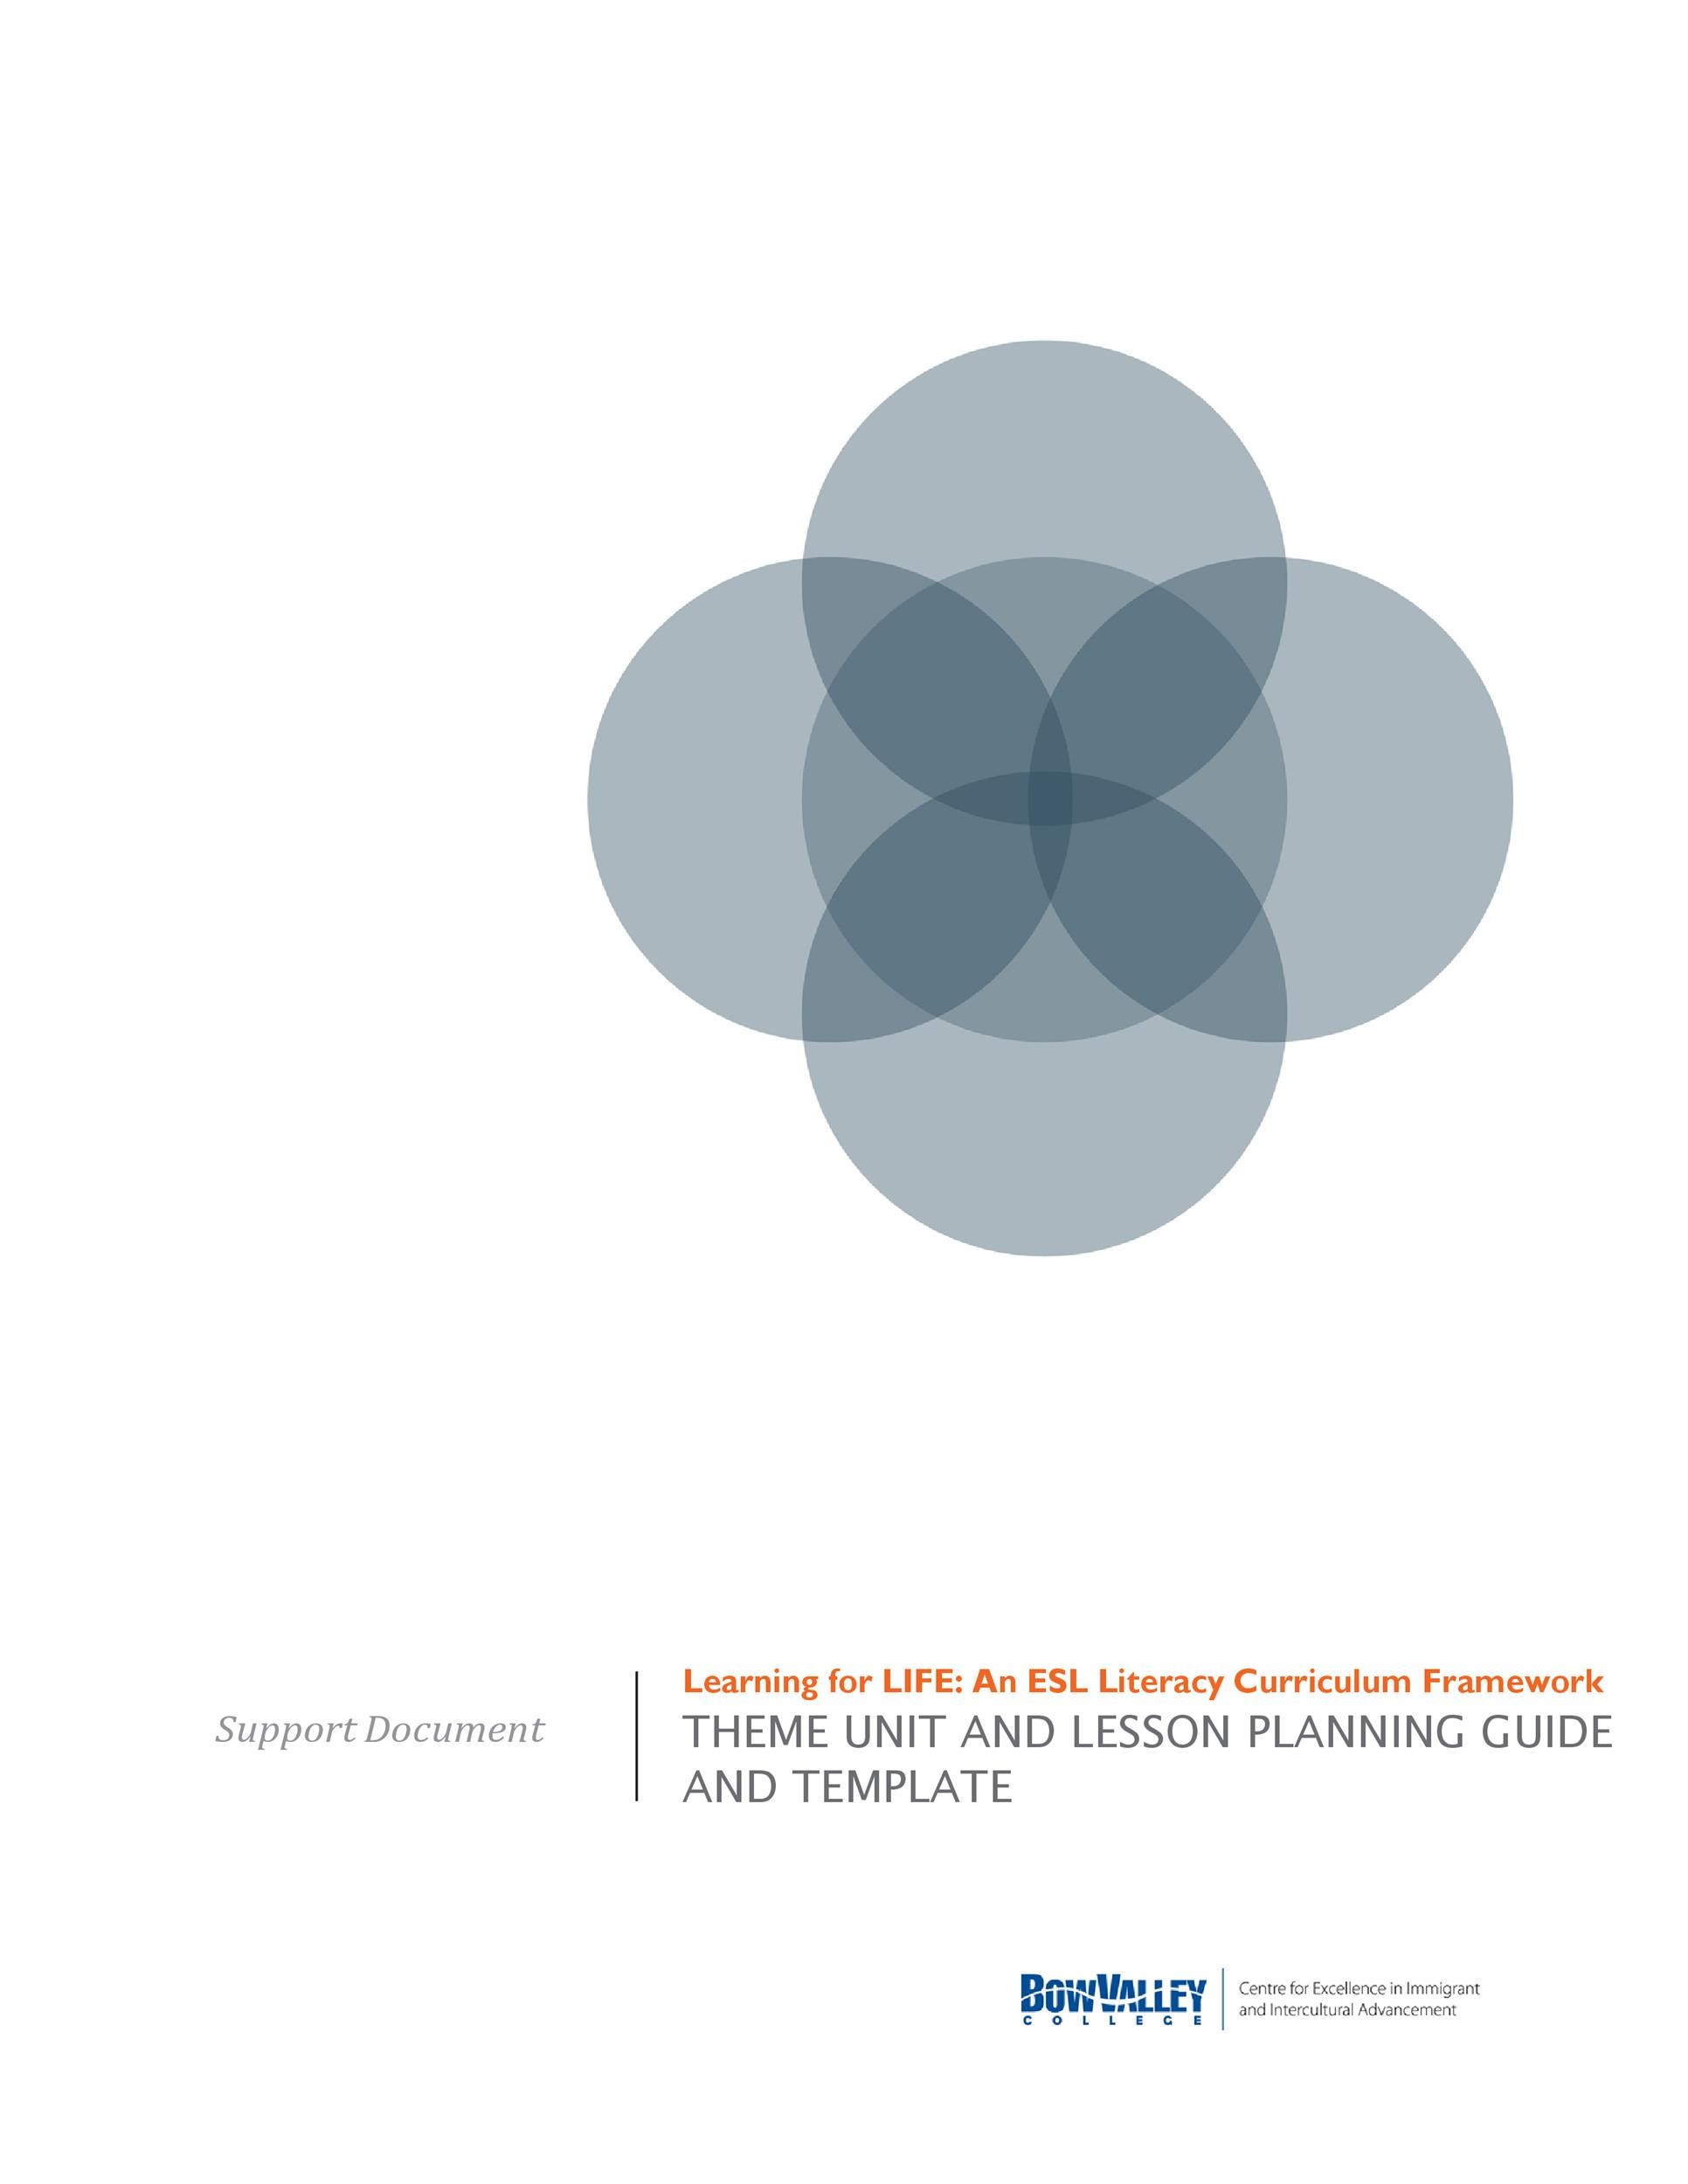 39 Best Unit Plan Templates Word, PDF - Template Lab - assessment plan template